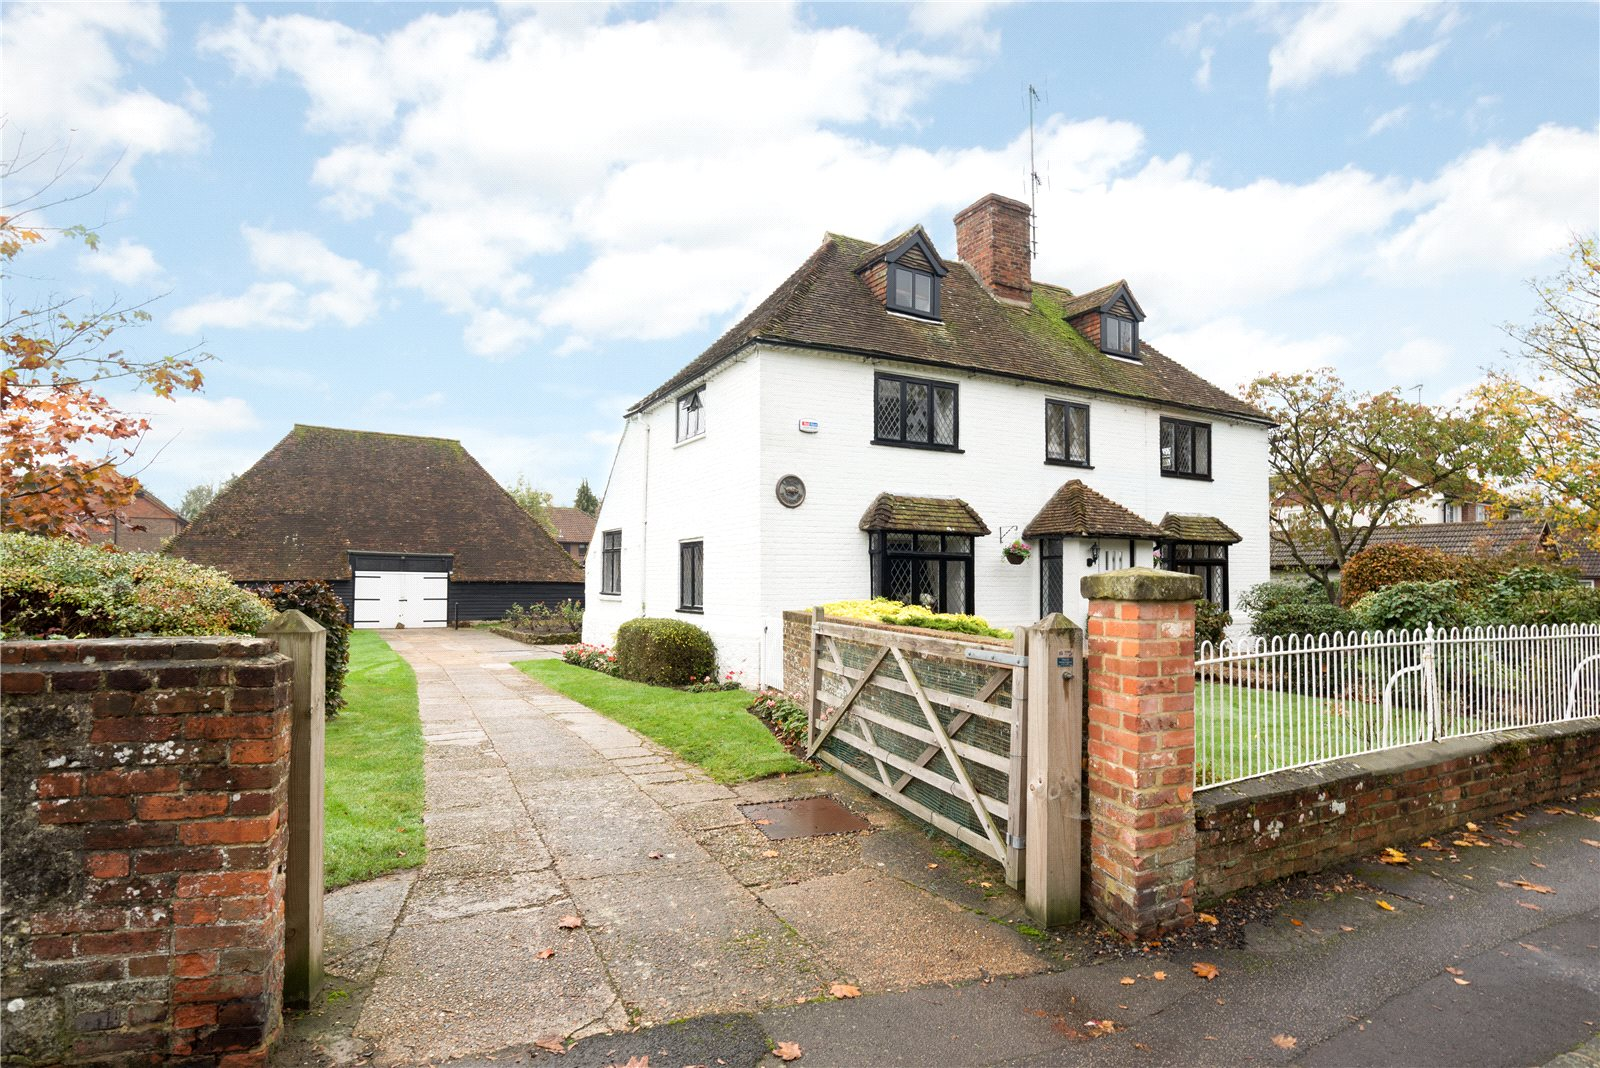 Casa Unifamiliar por un Venta en The Street, Willesborough, Ashford, Kent, TN24 Ashford, Inglaterra